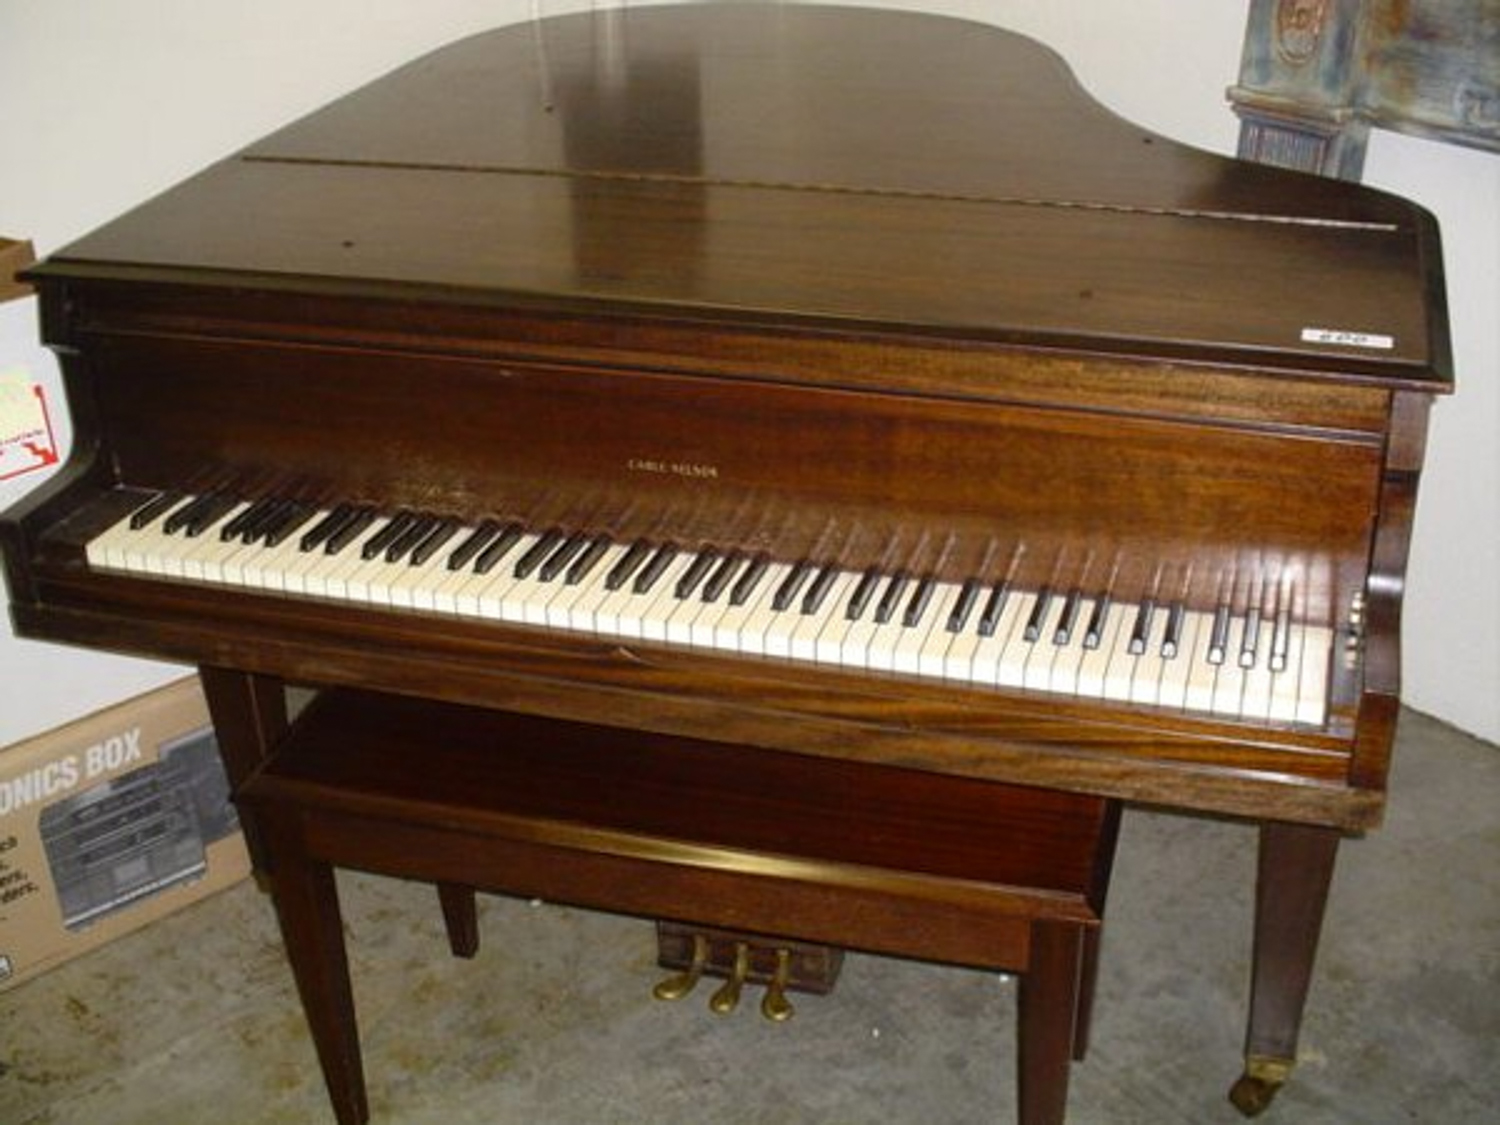 Cable nelson baby grand piano size 39 x 54 x 58 99 x for Size of baby grand piano